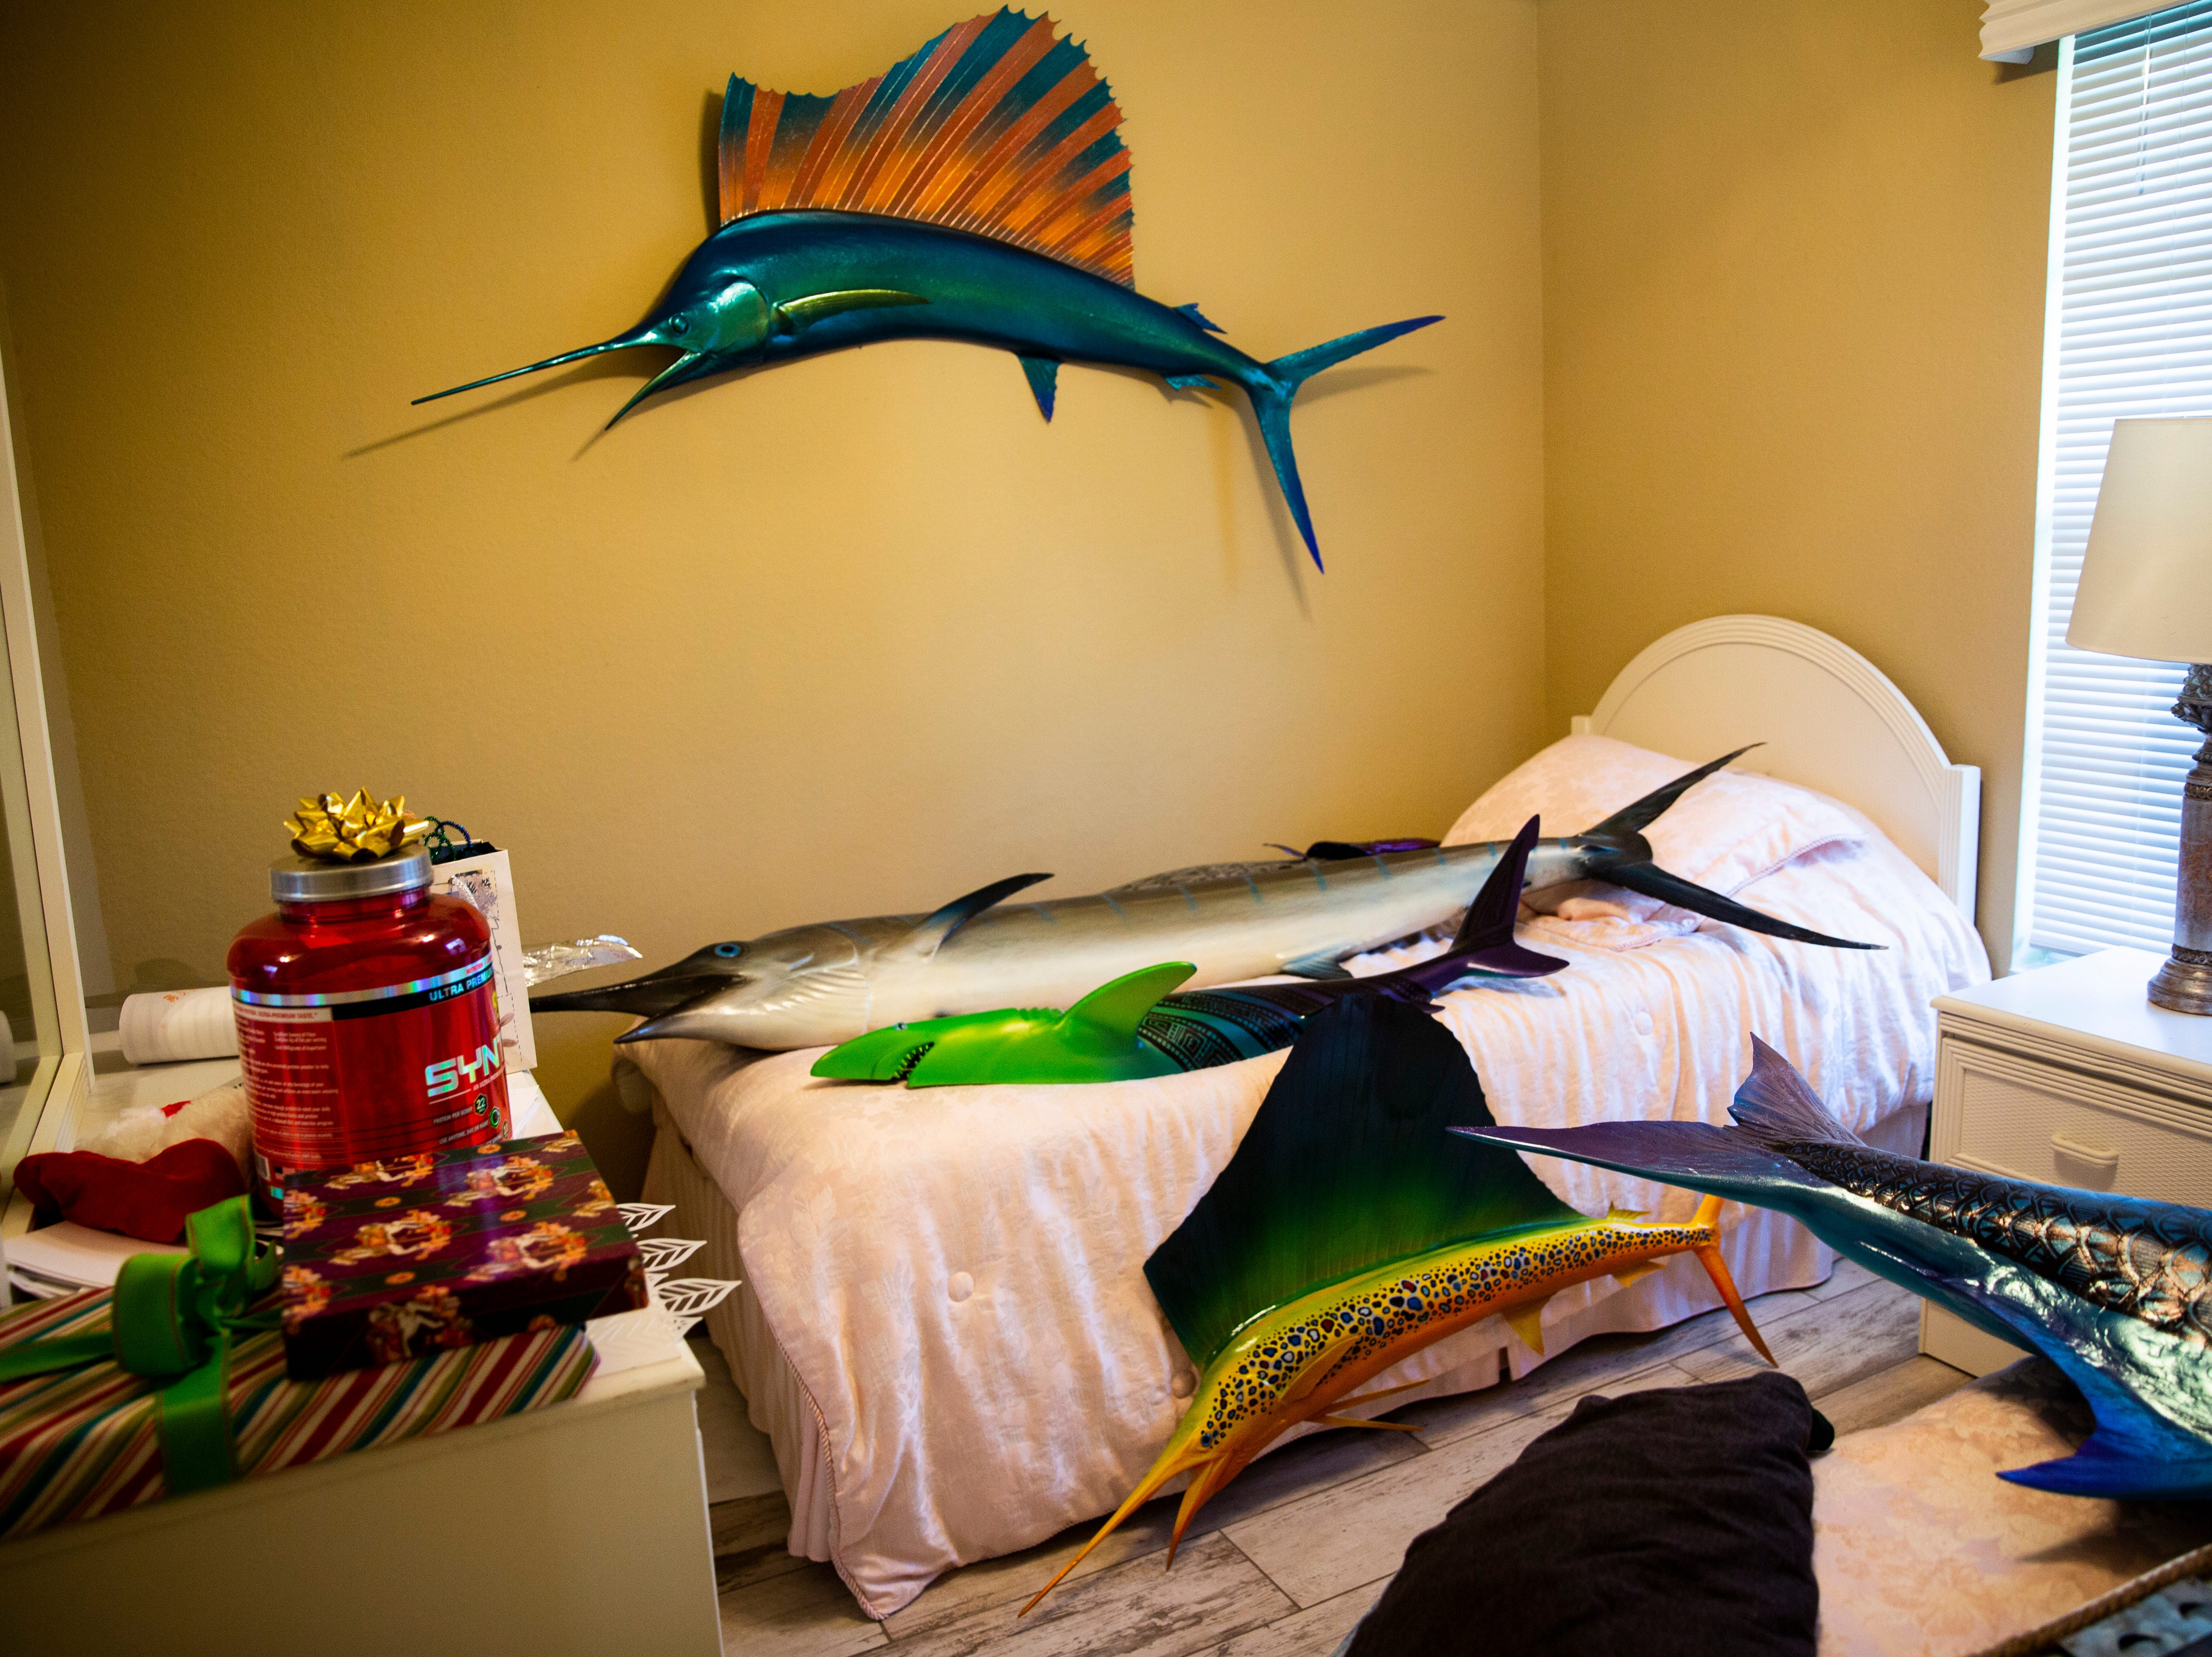 Fiberglass fish lie all around the bedroom where Jake Jones' daughters sleep when they come to visit on Wednesday, Jan. 2, 2019, at his home in Golden Gate Estates.